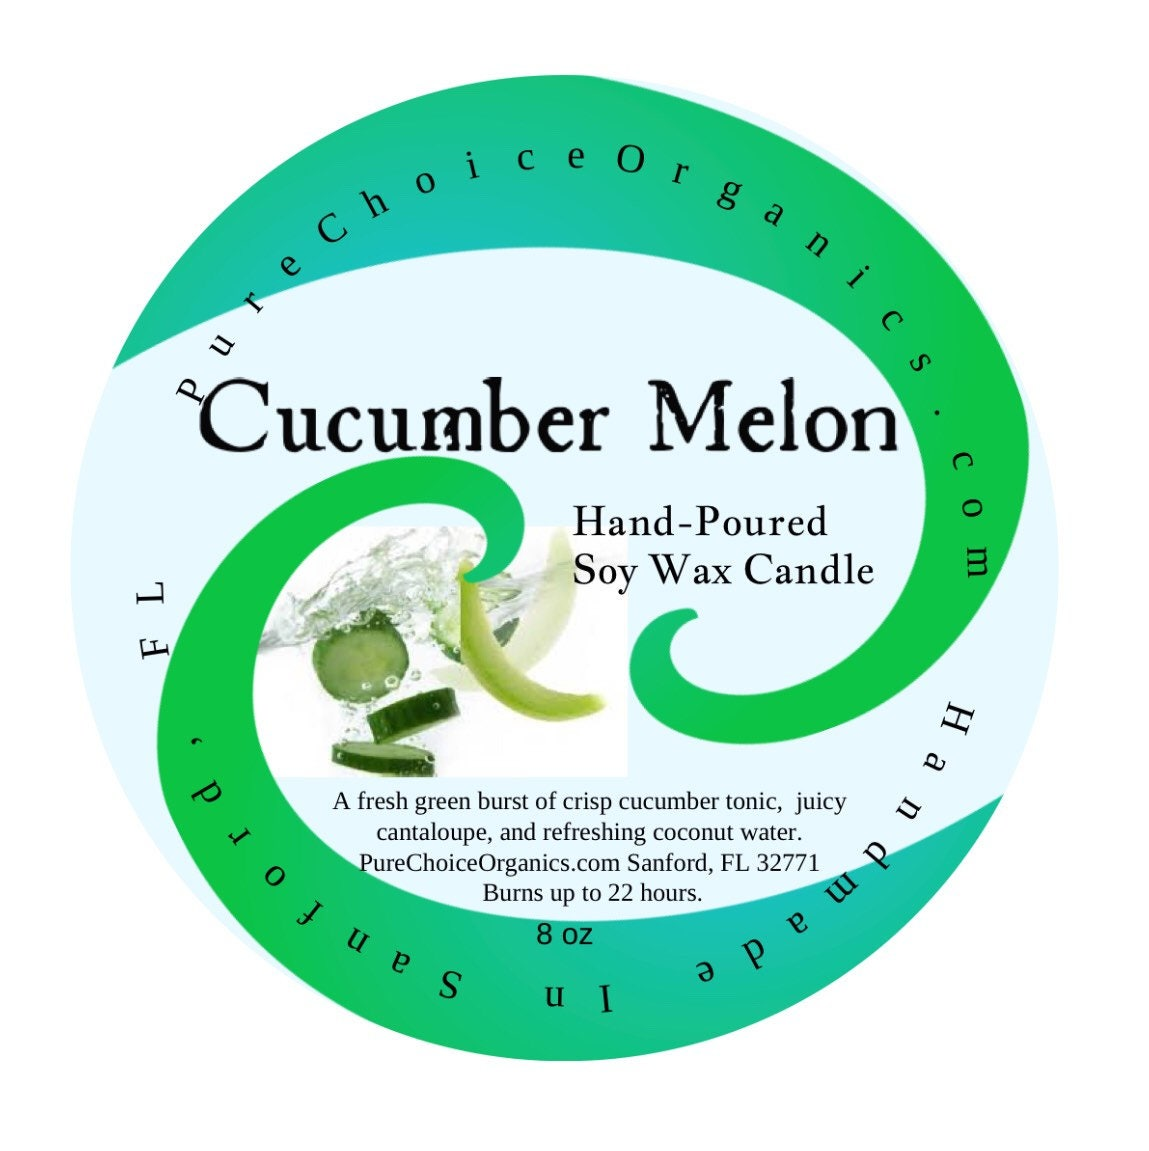 Cucumber Melon Soy Wax Candles Holiday Gift